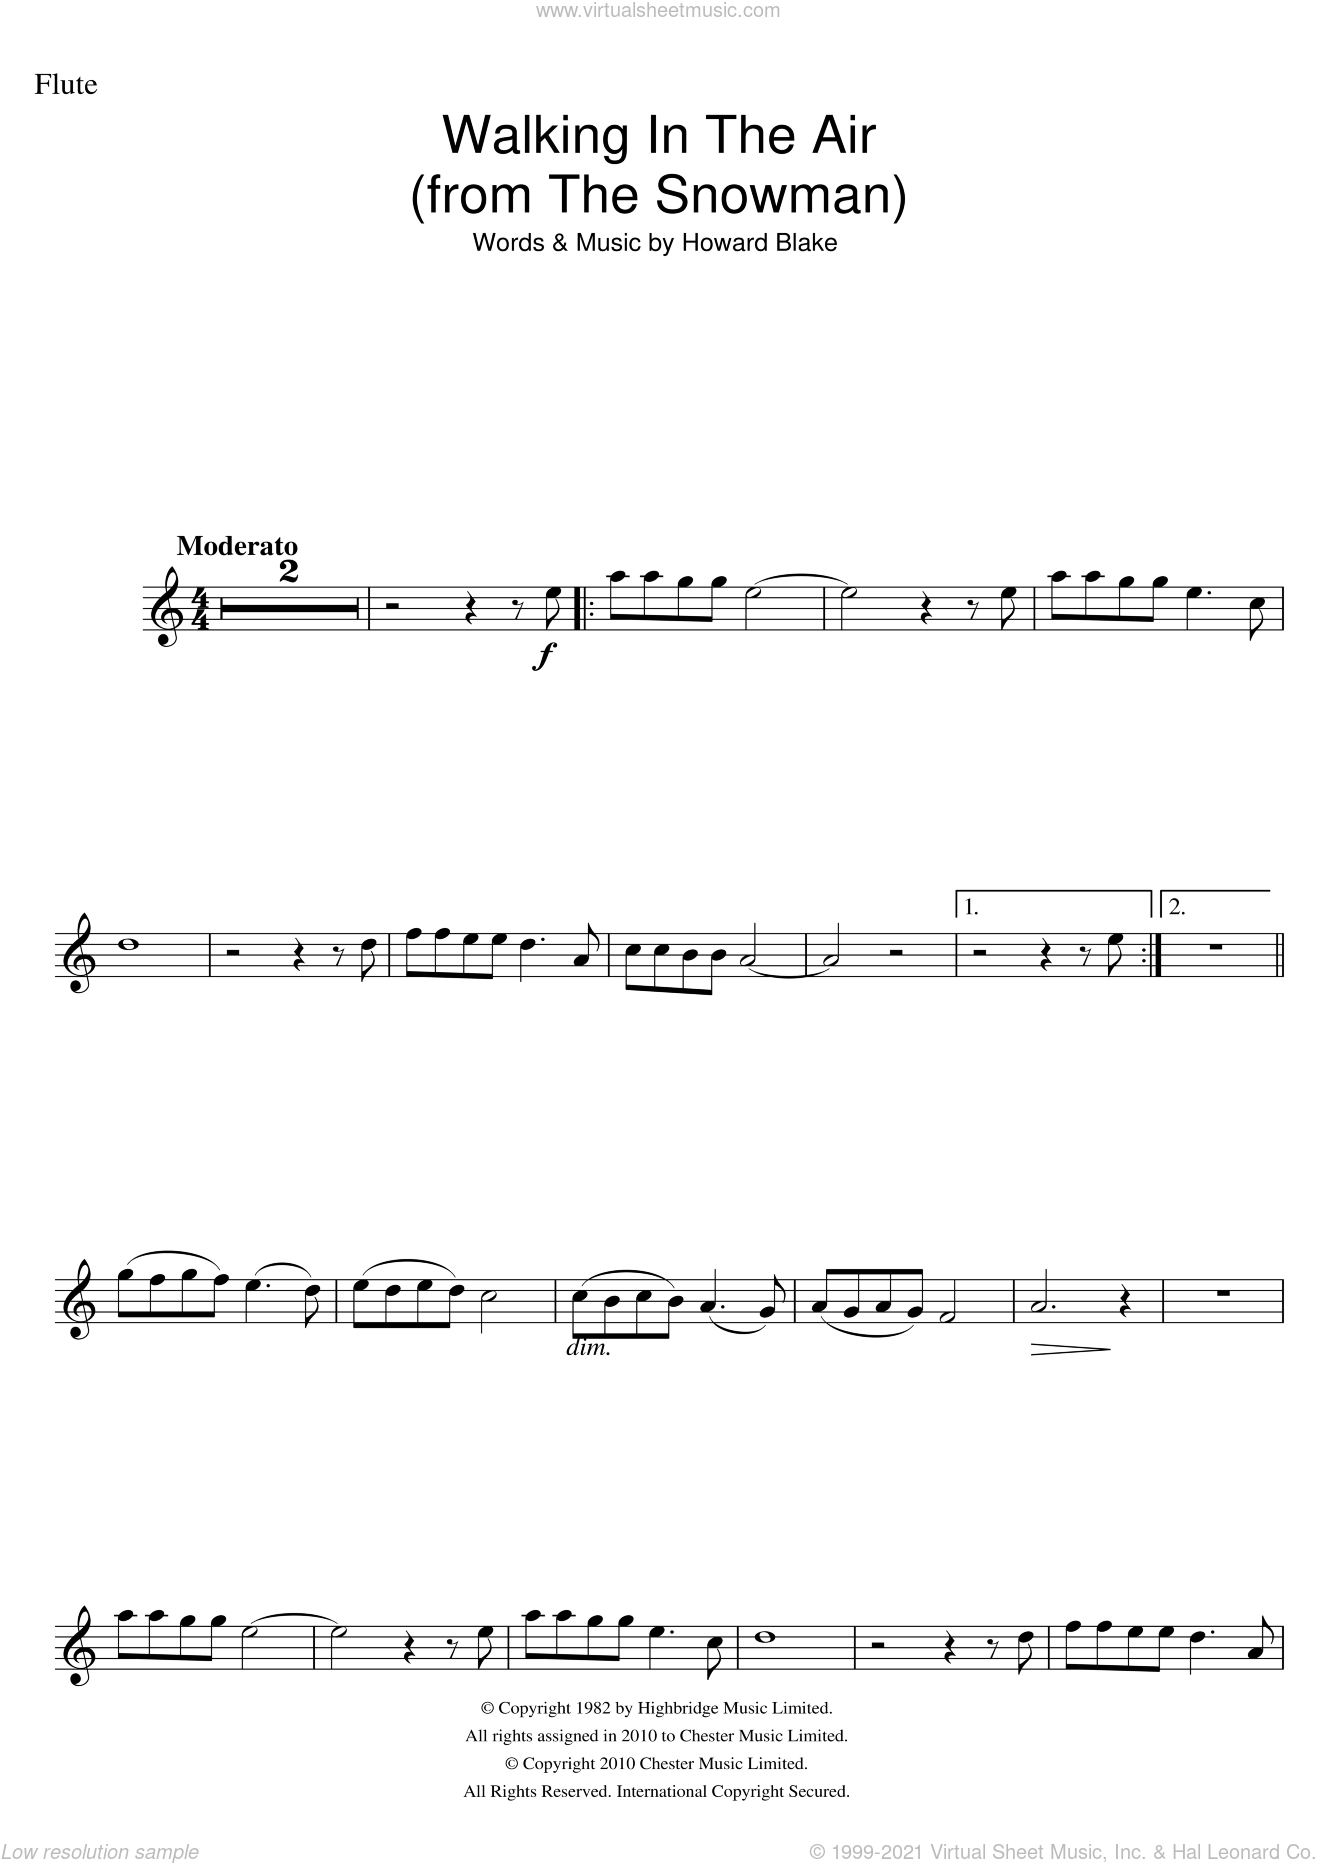 Walking In The Air (theme from The Snowman) sheet music for flute solo by Howard Blake, intermediate skill level